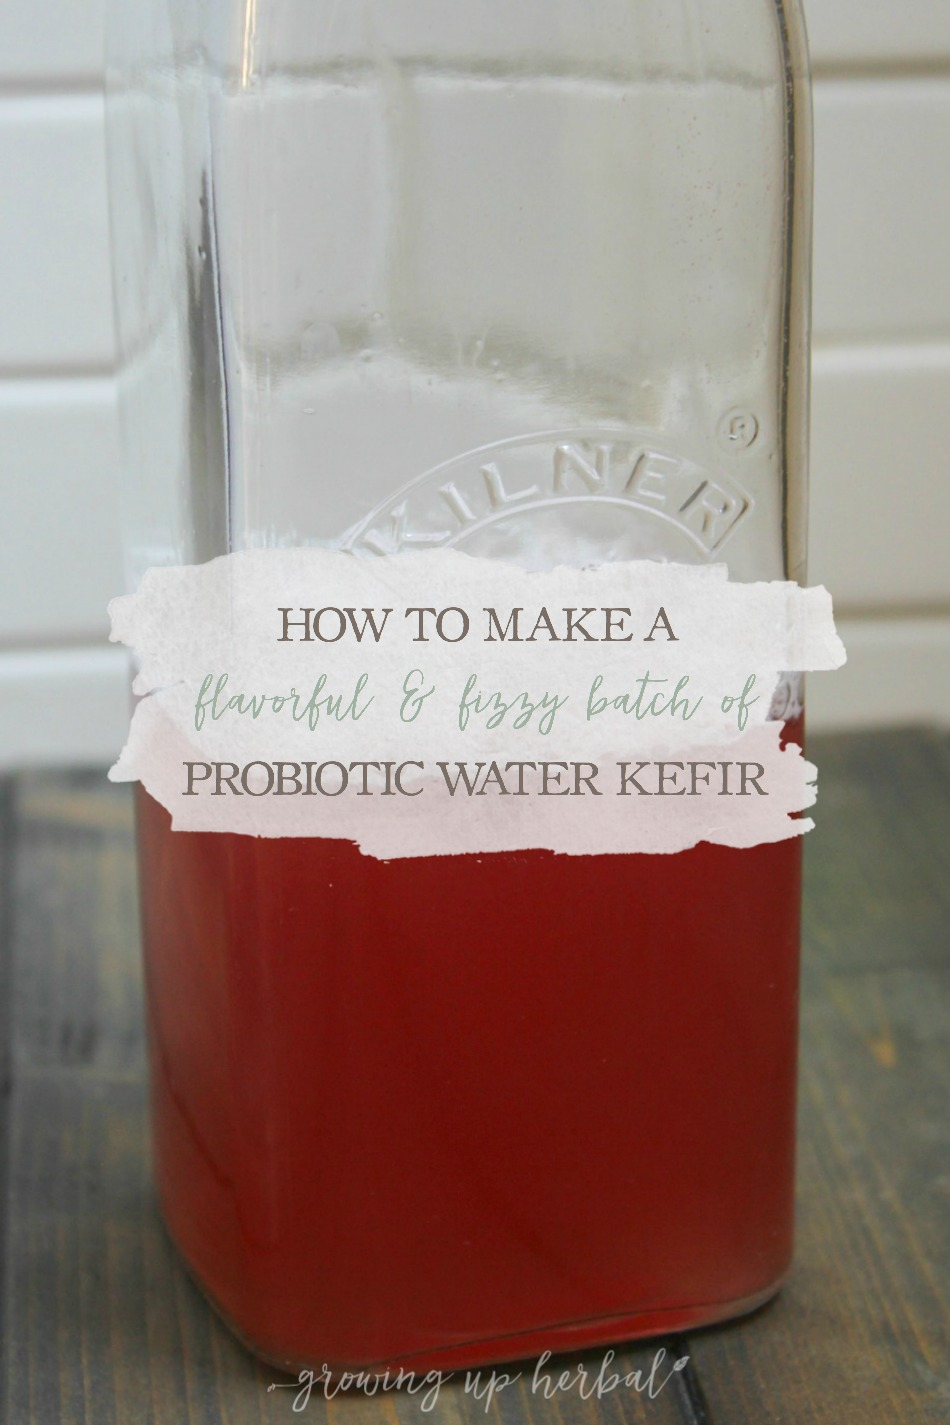 How To Make A Flavorful & Fizzy Batch of Probiotic Water Kefir | Growing Up Herbal | This water kefir recipe is sure to turn out with a delightful flavor and fizz that will make your tounge and tummy happy in more ways than one!